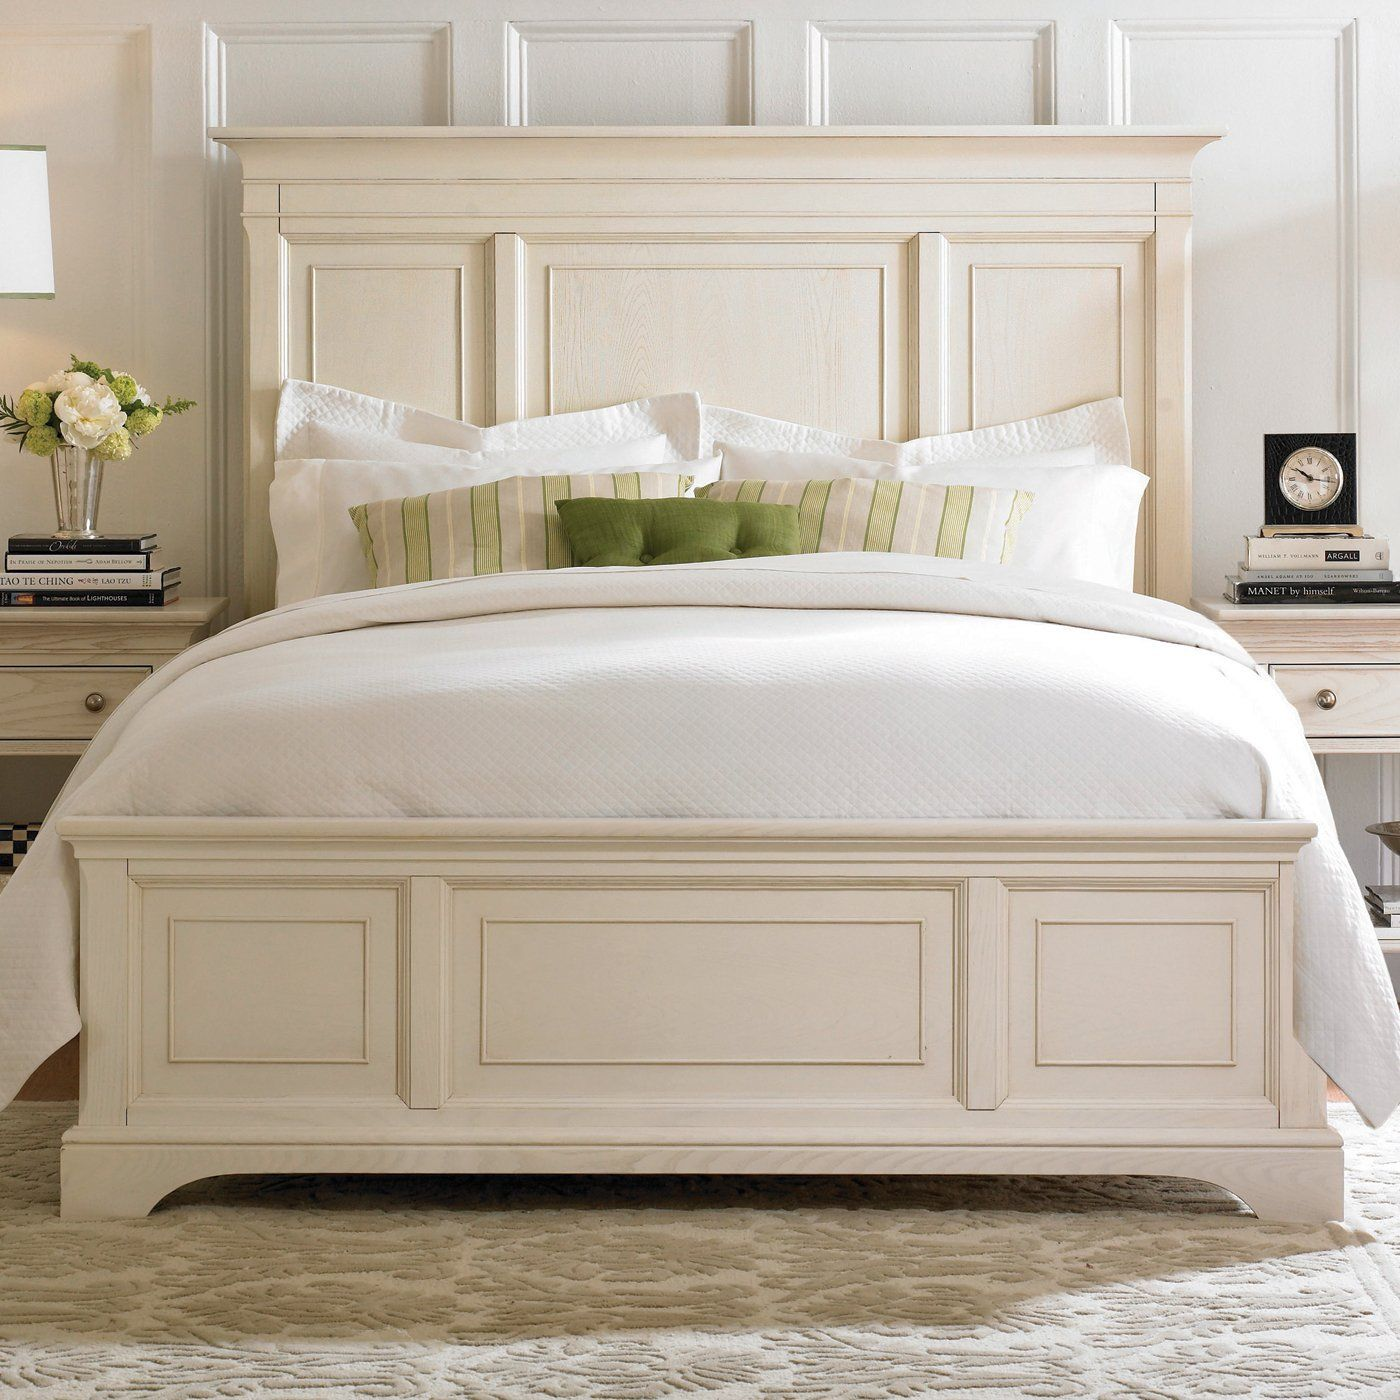 King Size Bedframe That Will Allow The Dogs To Jump Off The Back W O Getting Hurt By A High Footboar Muebles Dormitorio Decoracion De Muebles Diseno De Muebles